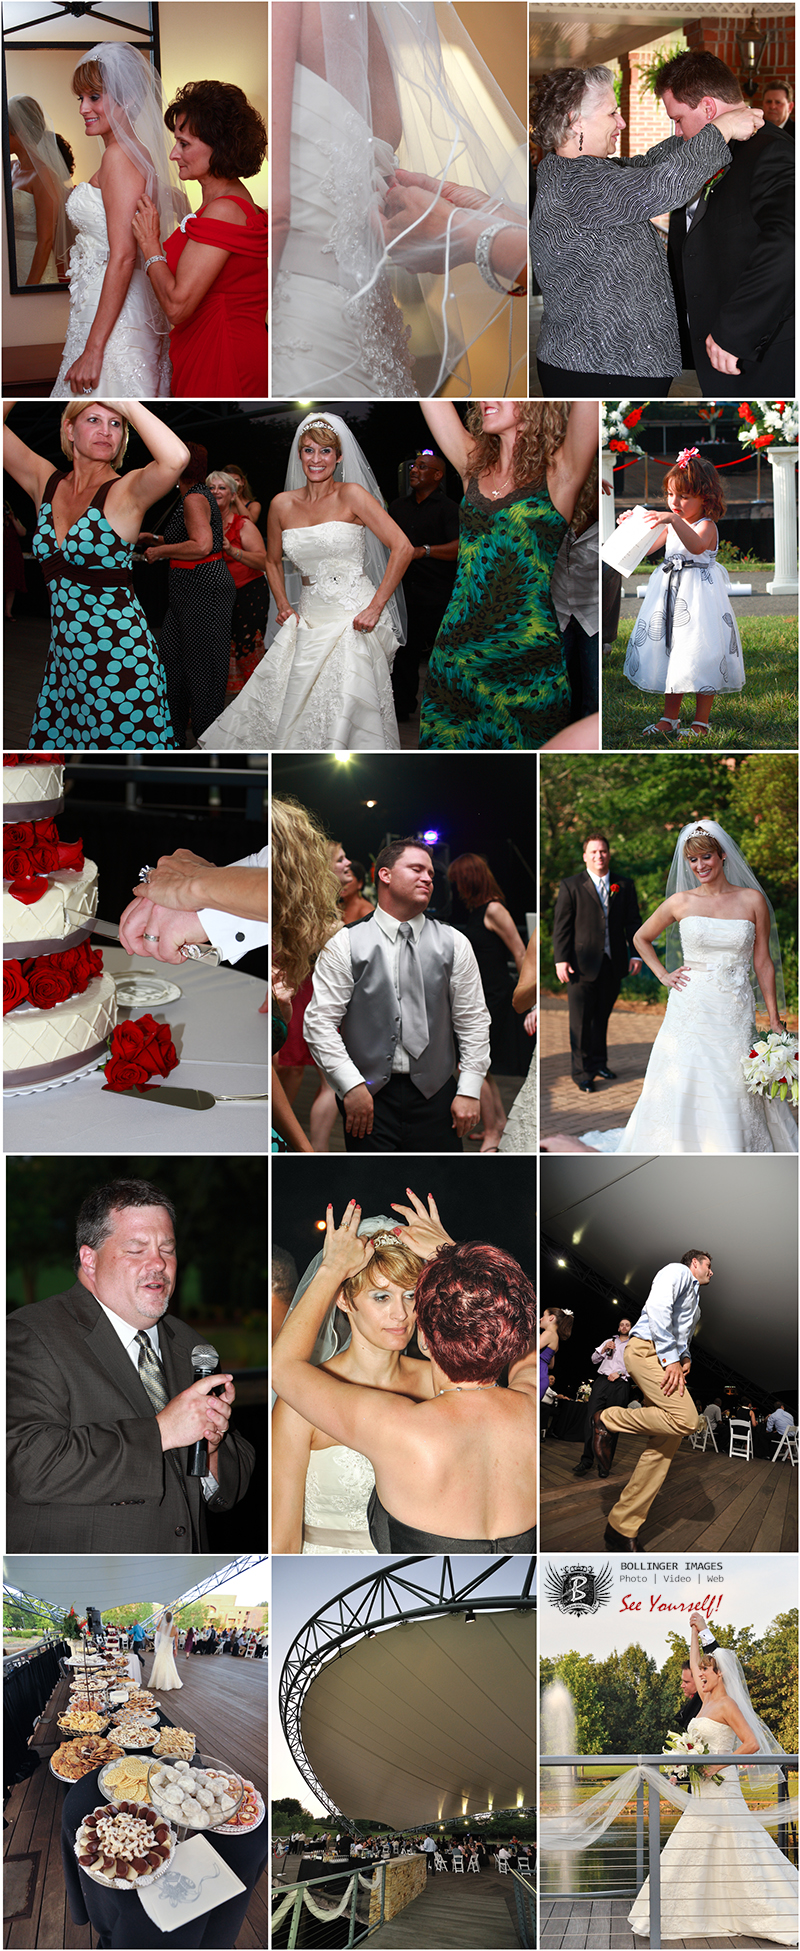 South Park area wedding photographer